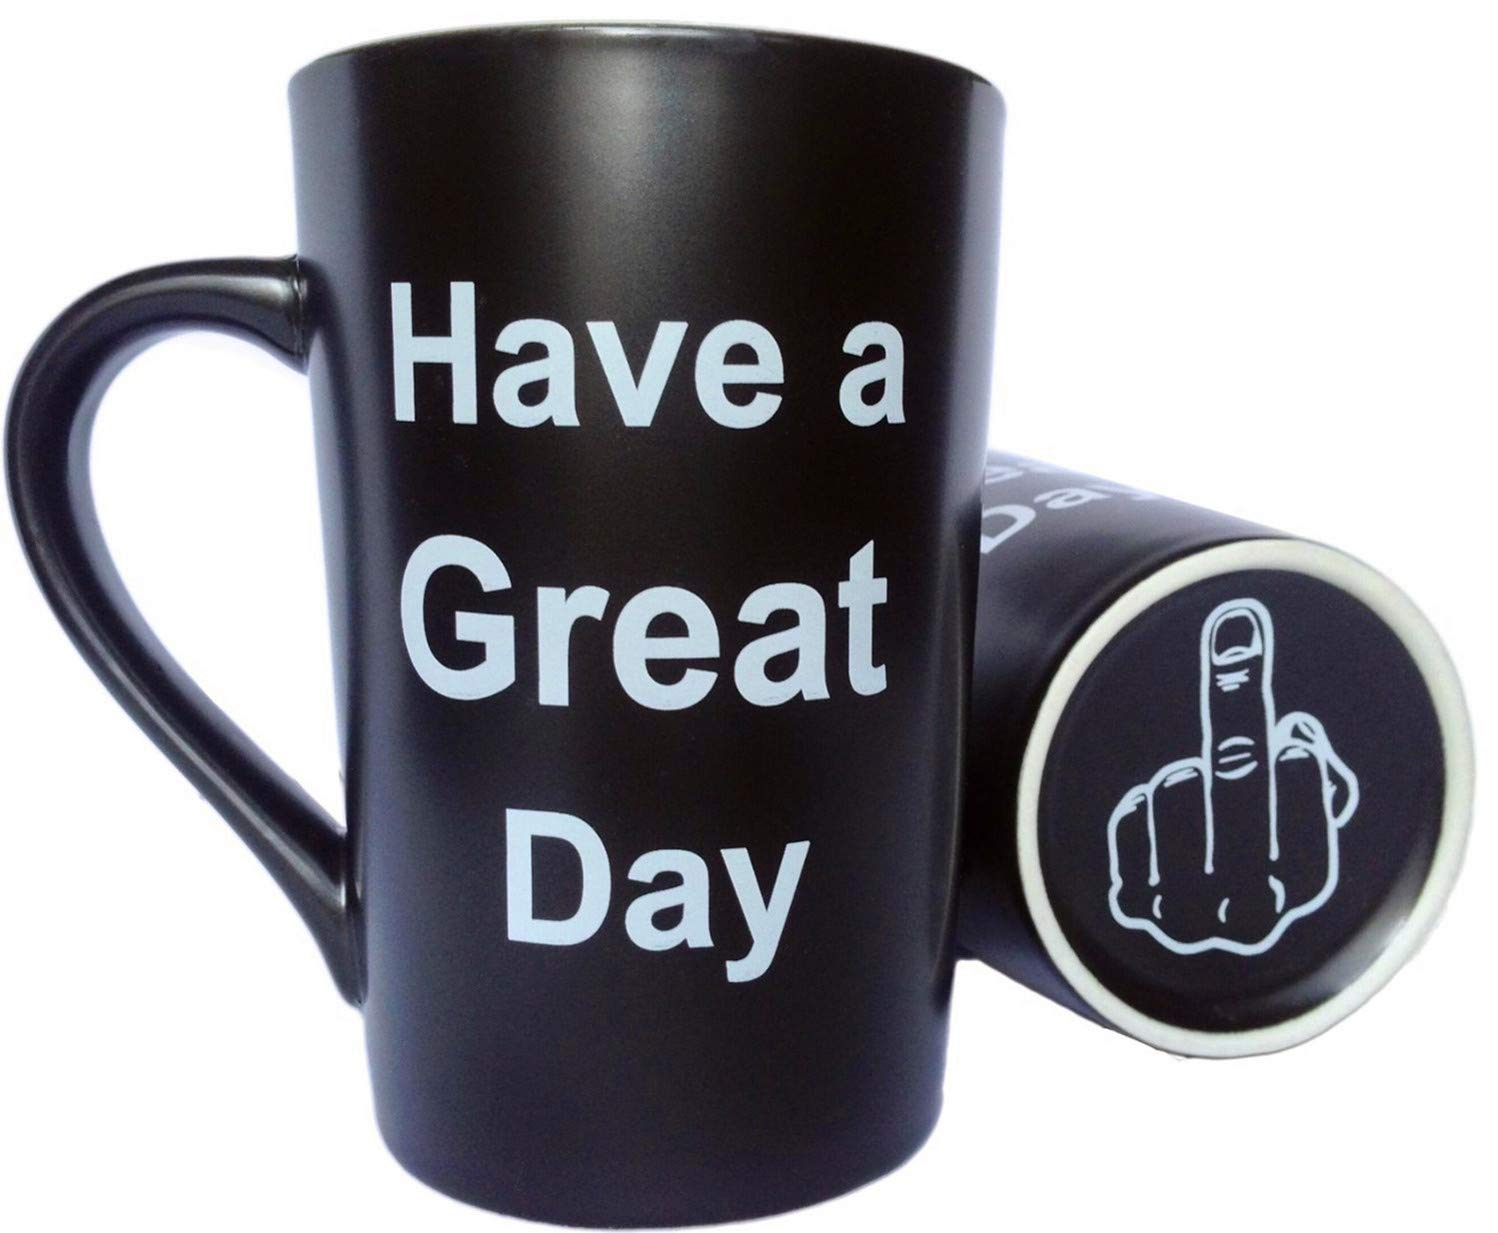 MAUAG Funny Unique Coffee Mugs - Have a Great Day Cute Cool Ceramic Cup Black, Best Holiday and Christmas Gag Gifts, 12 Oz